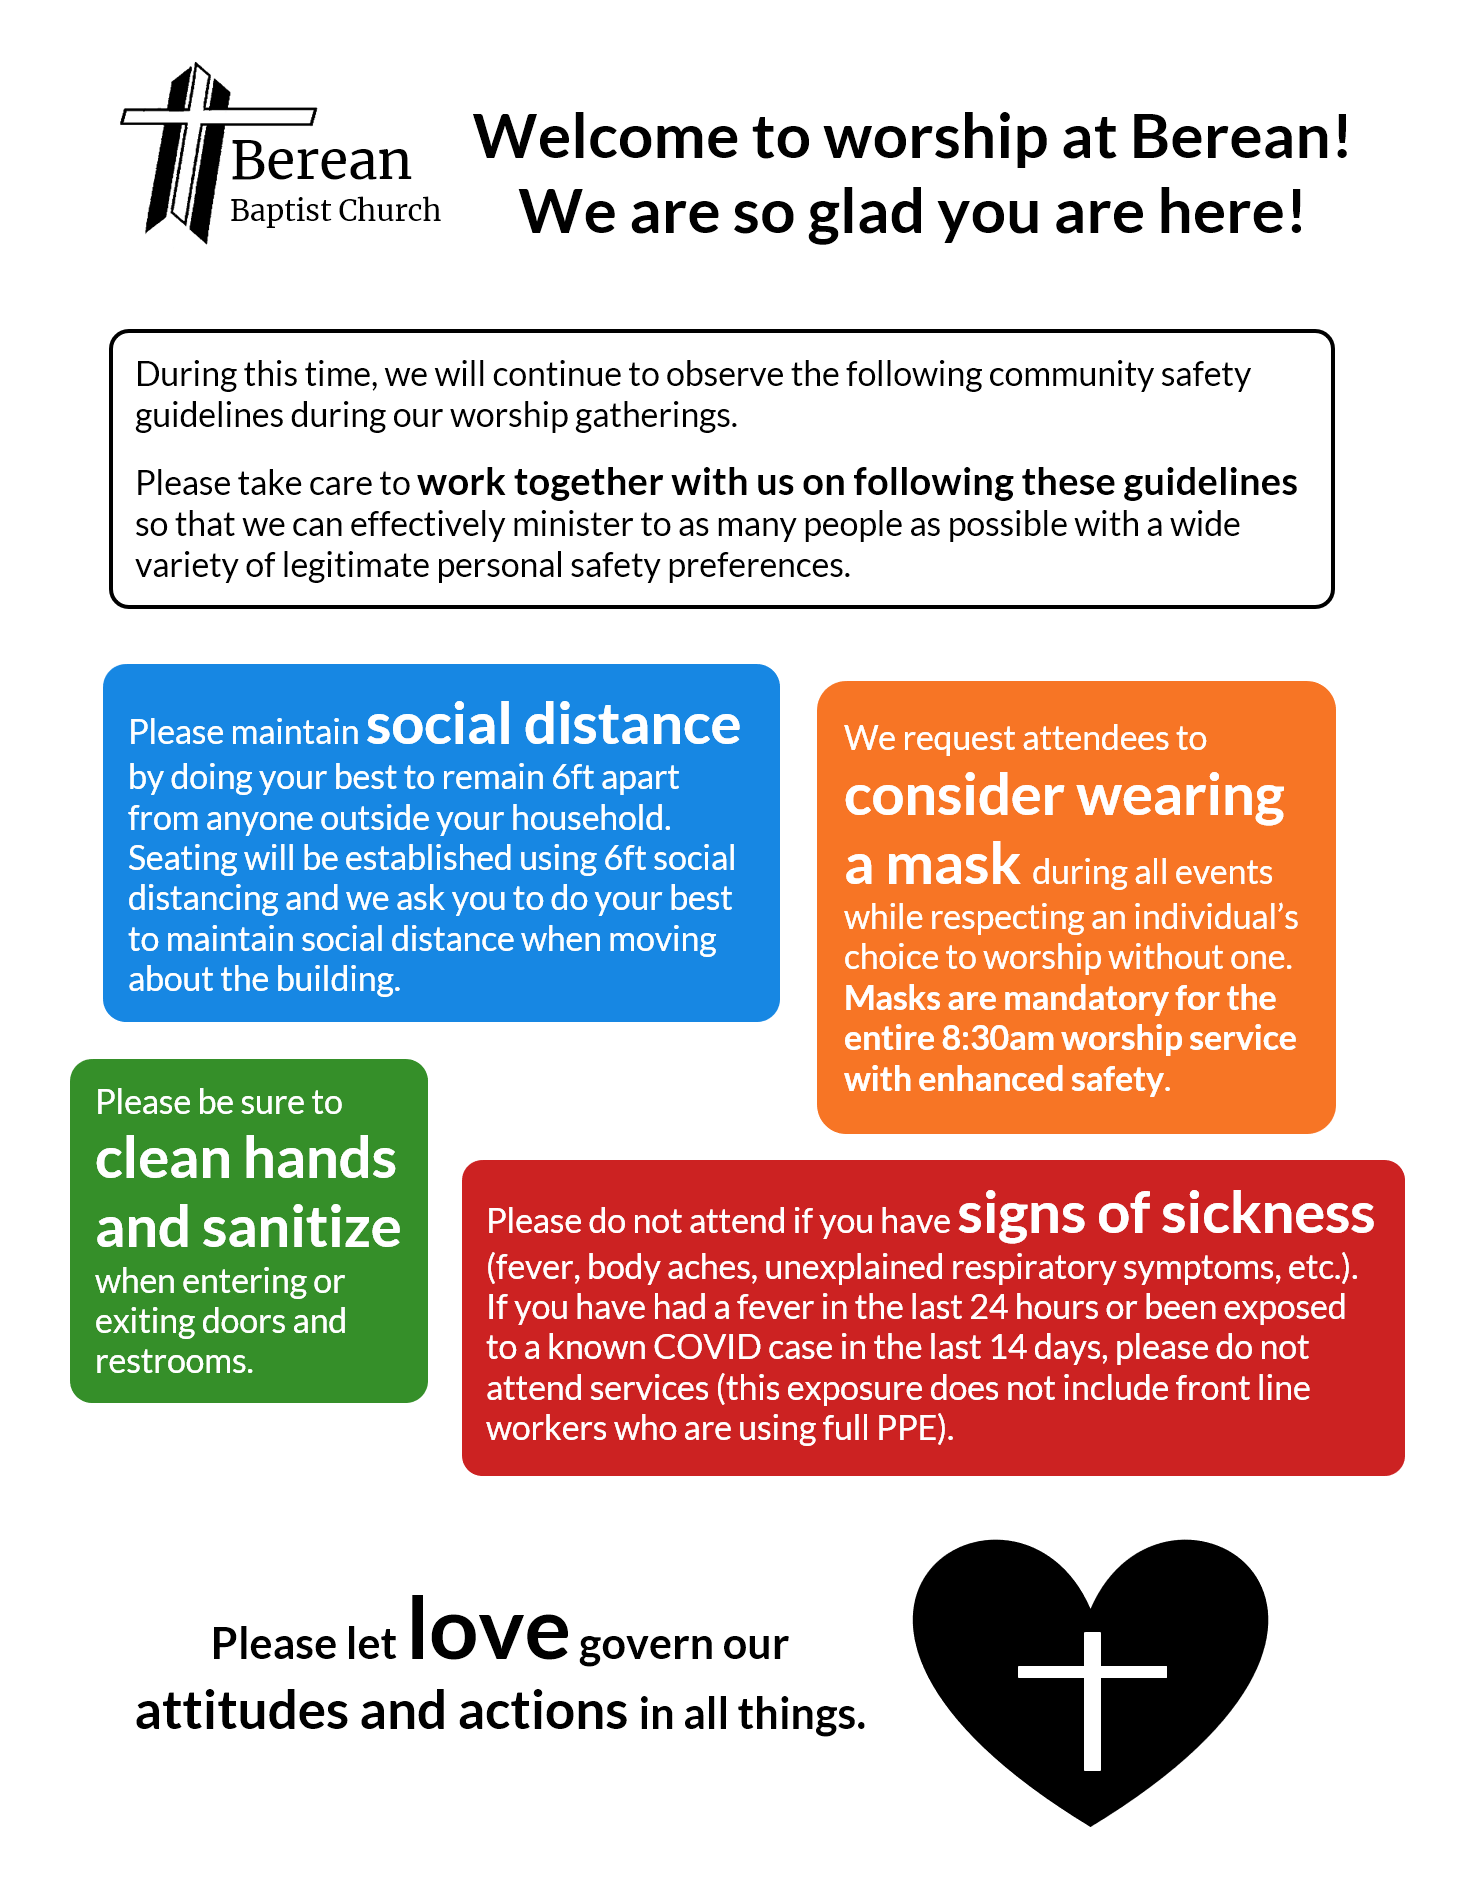 Phase 2.5 Corporate Worship Safety Guidelines Poster [2020-09-16]a